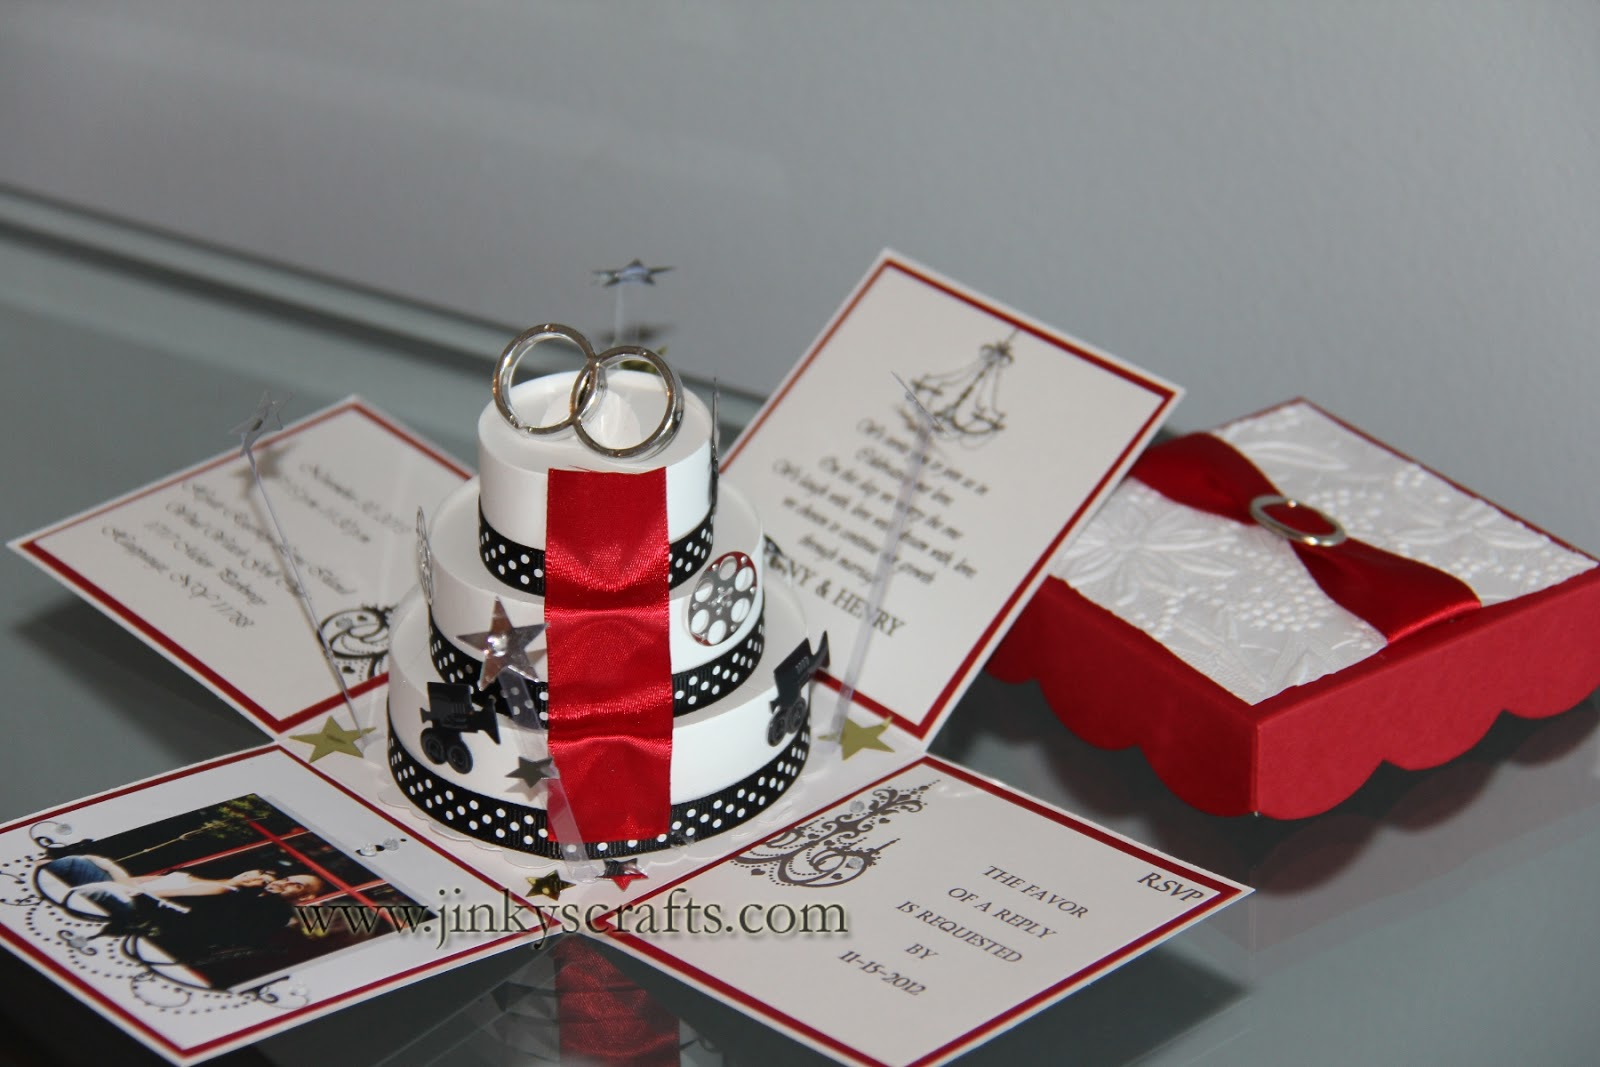 Jinkys Crafts Designs Hollywood Themed Wedding Invitations